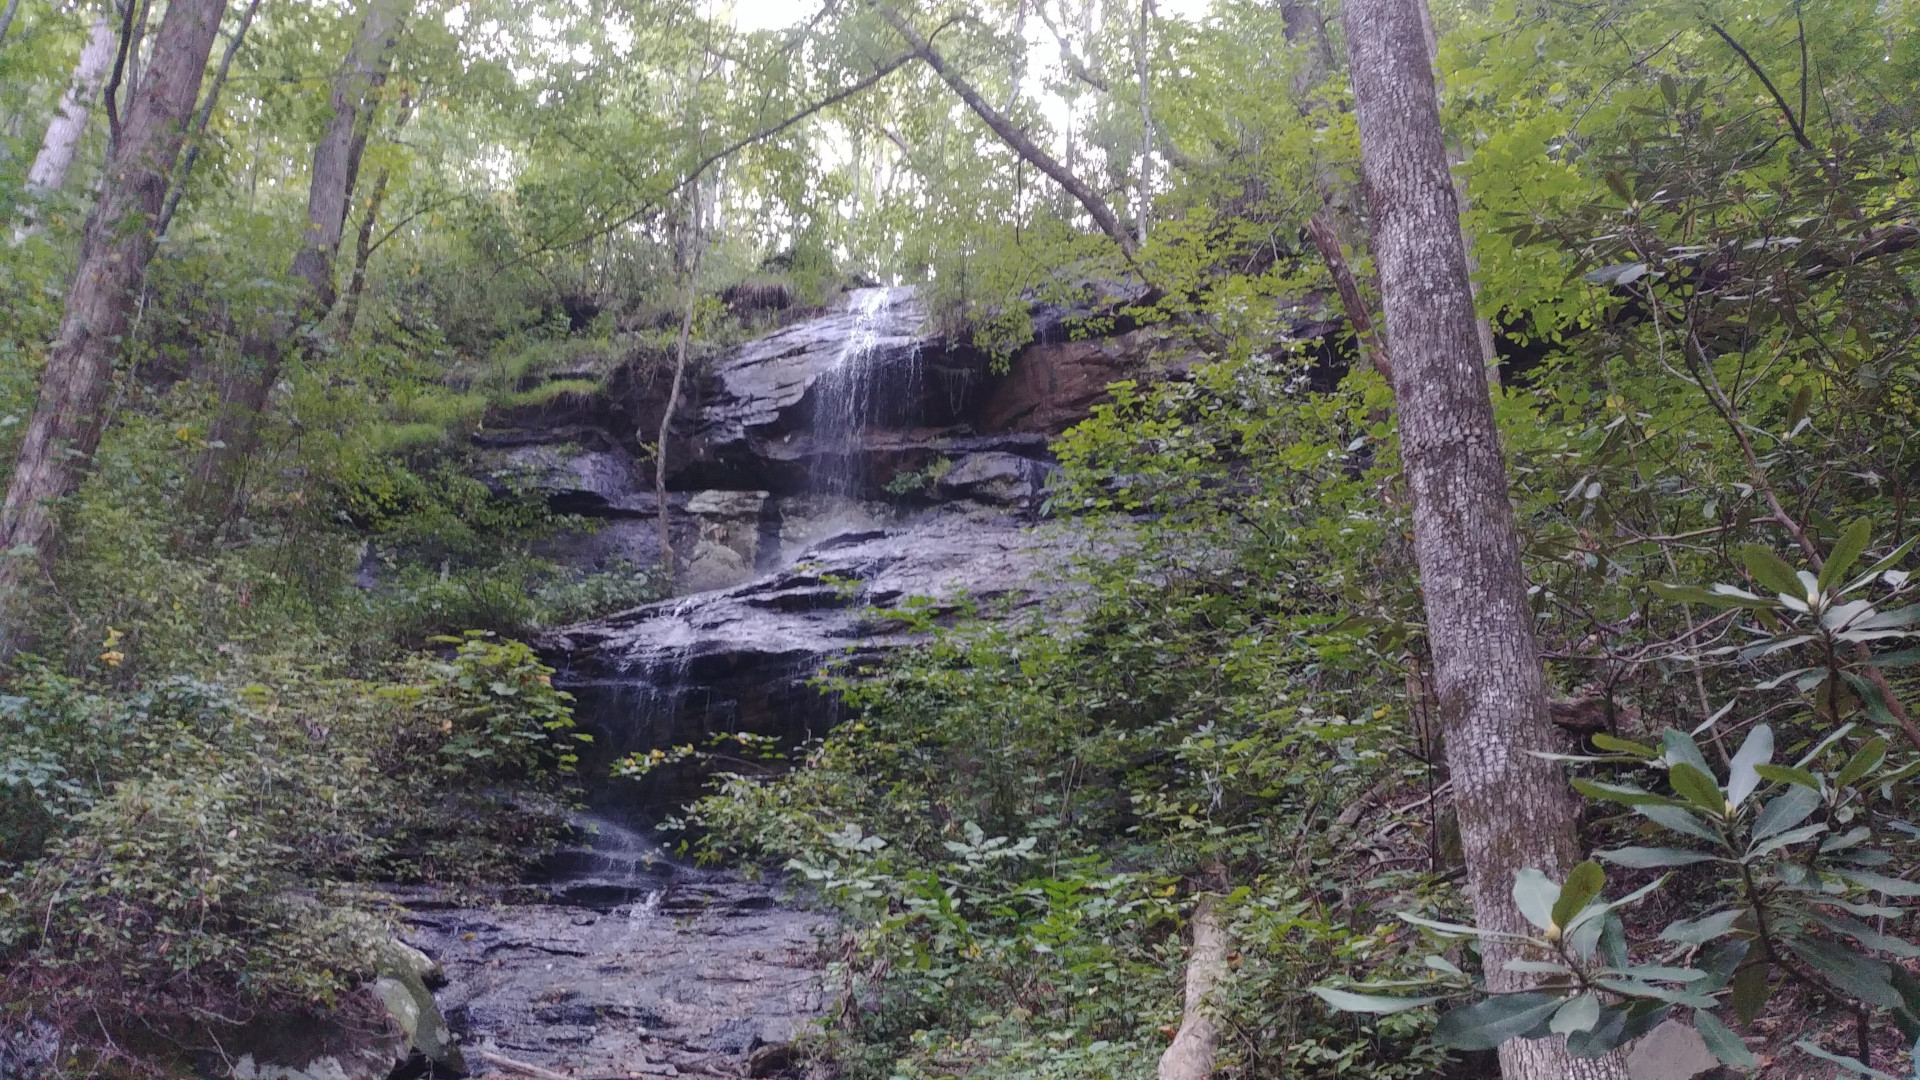 Hidden falls is really in middle of South Carolina forest and although it seems quite unimpressive, it is because direct view is covered by bushes and trees